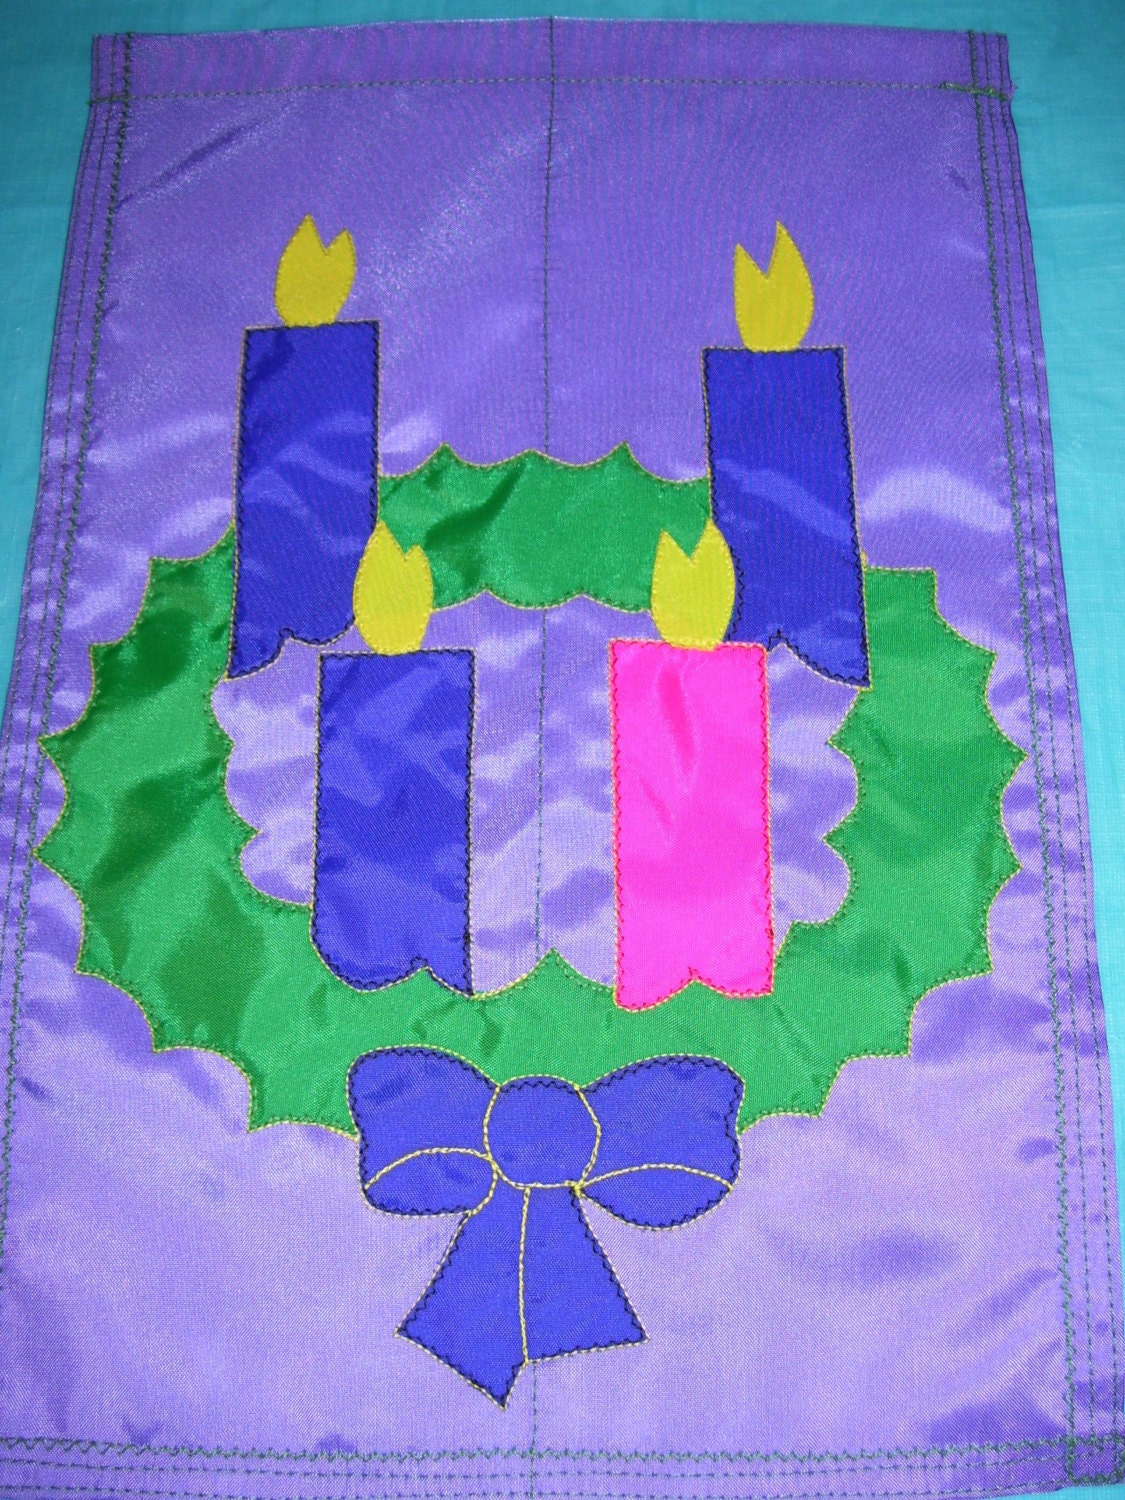 advent wreath 12 inch by 18 inch garden flag. Black Bedroom Furniture Sets. Home Design Ideas